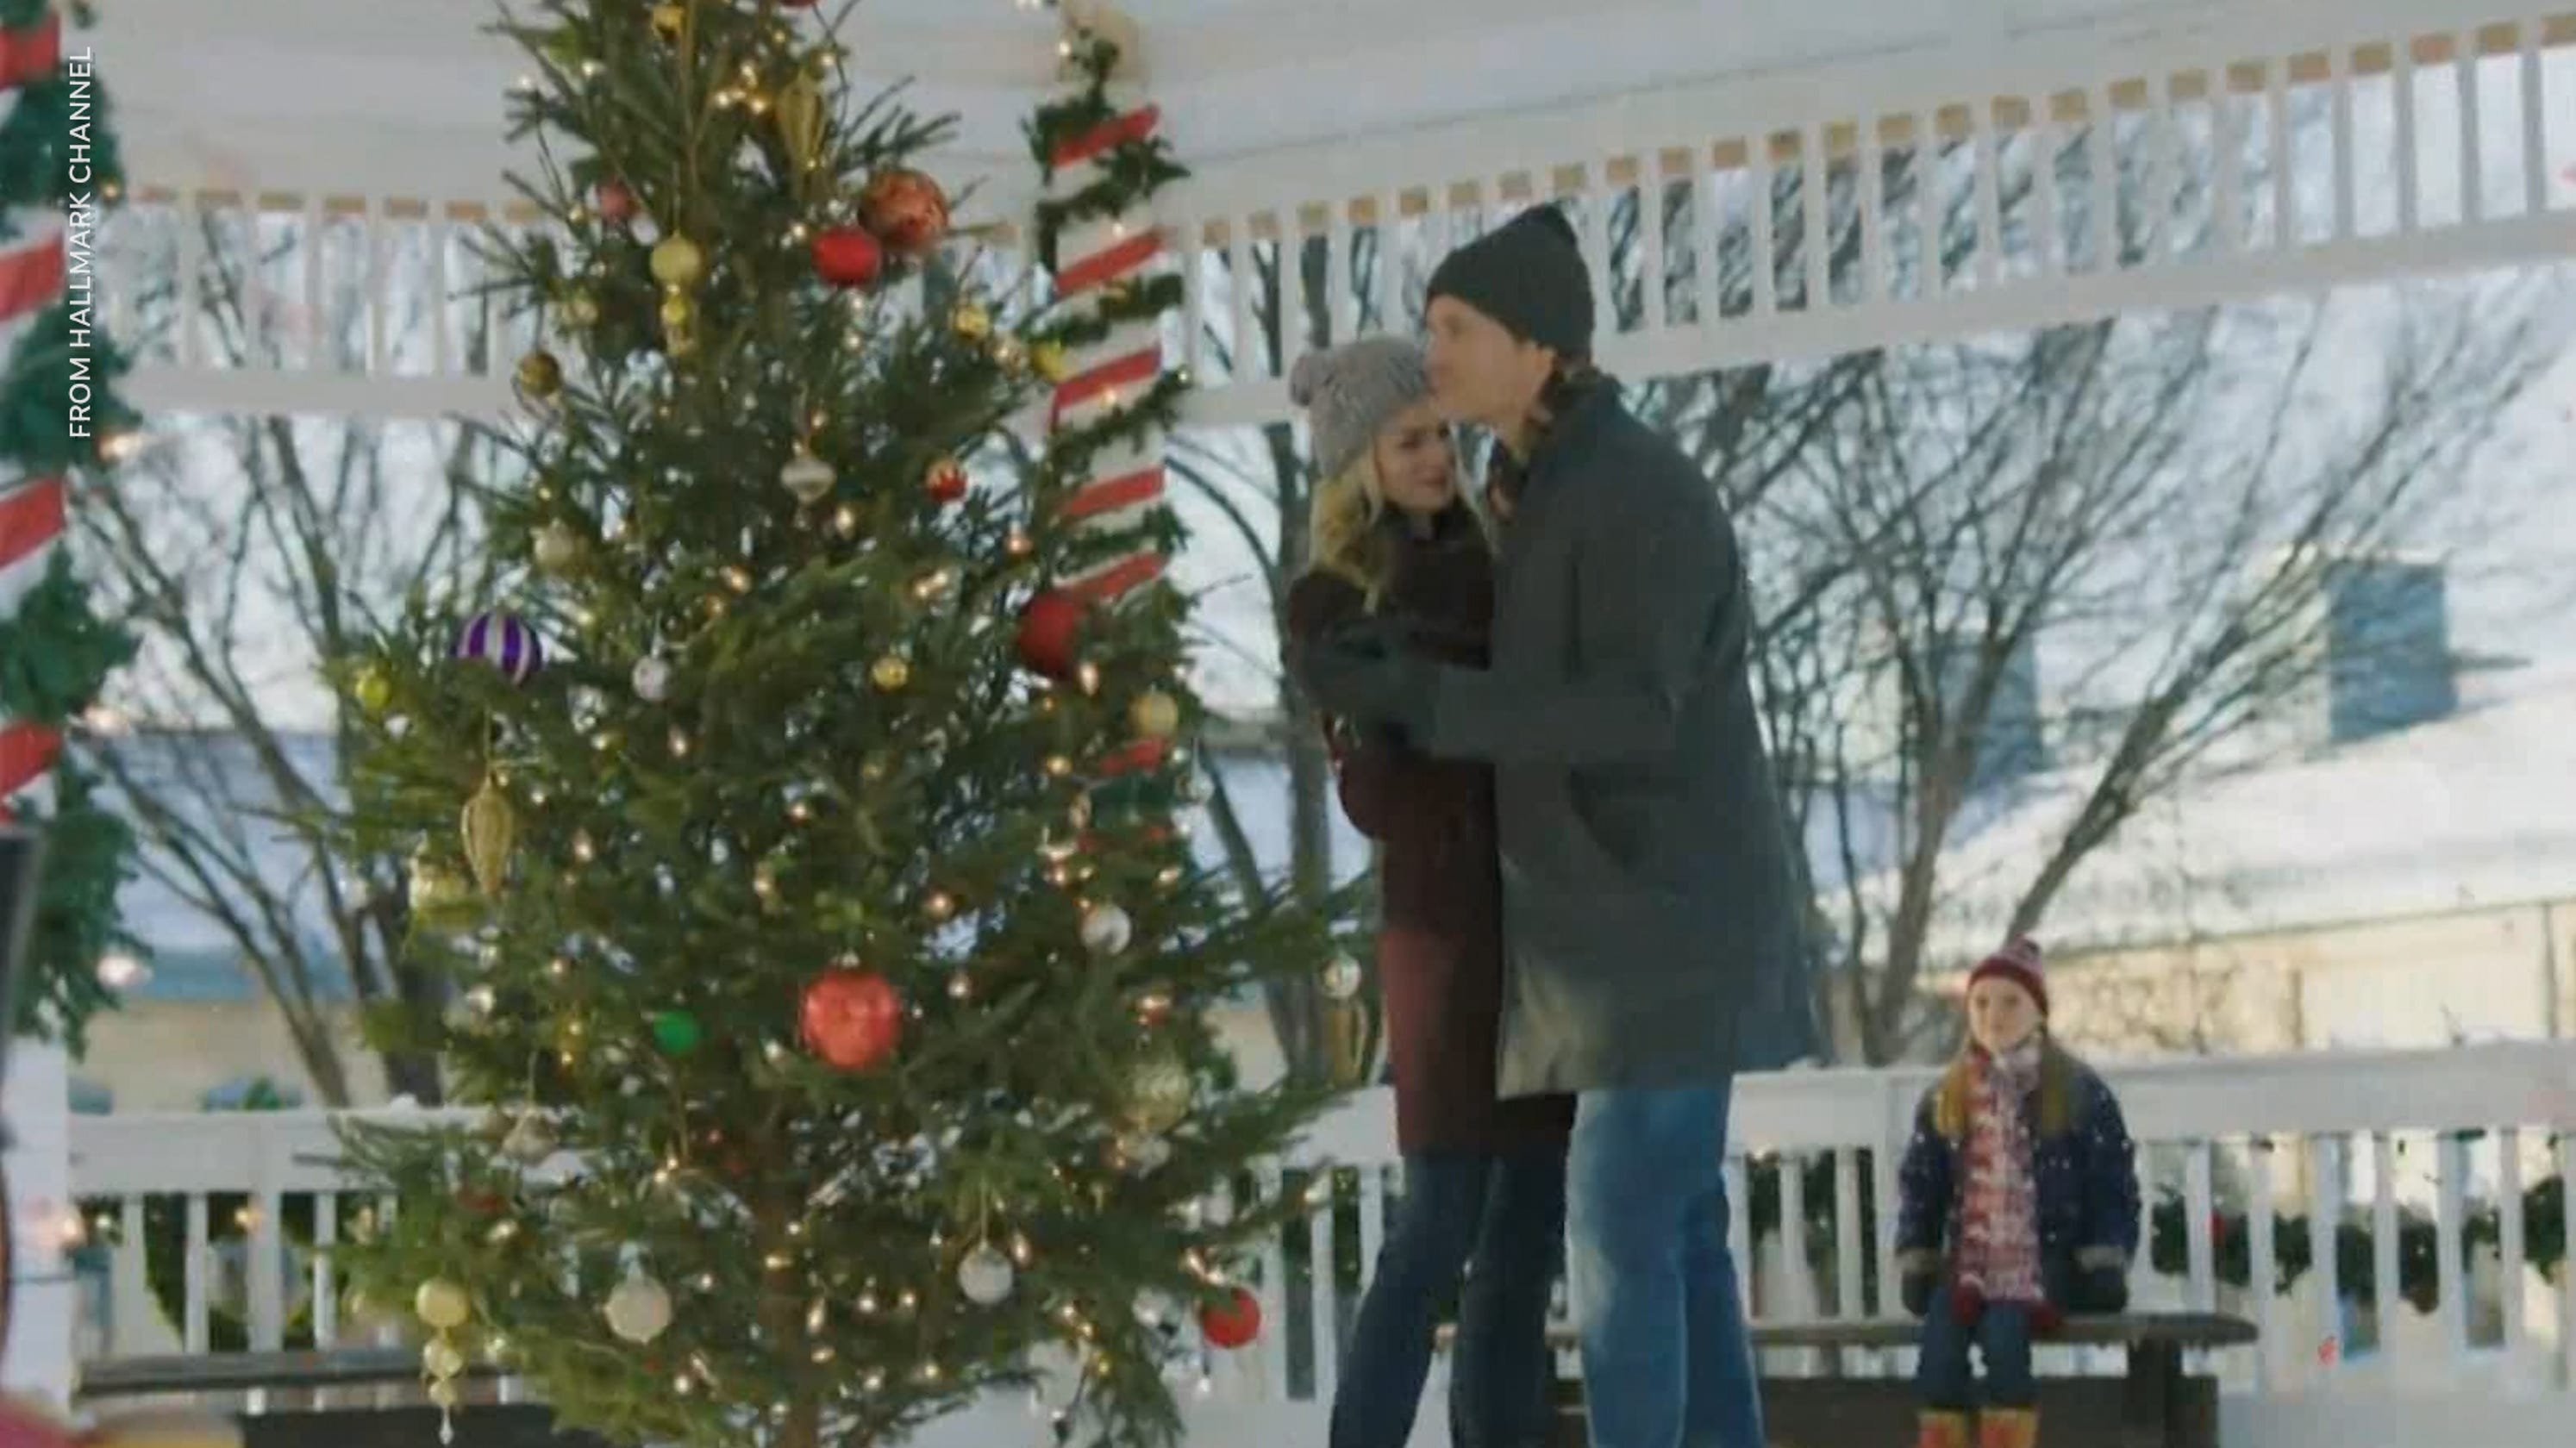 Things To Do In Nj For Christmas.Hallmark Channel Christmas Con Christmas Arrives Early In